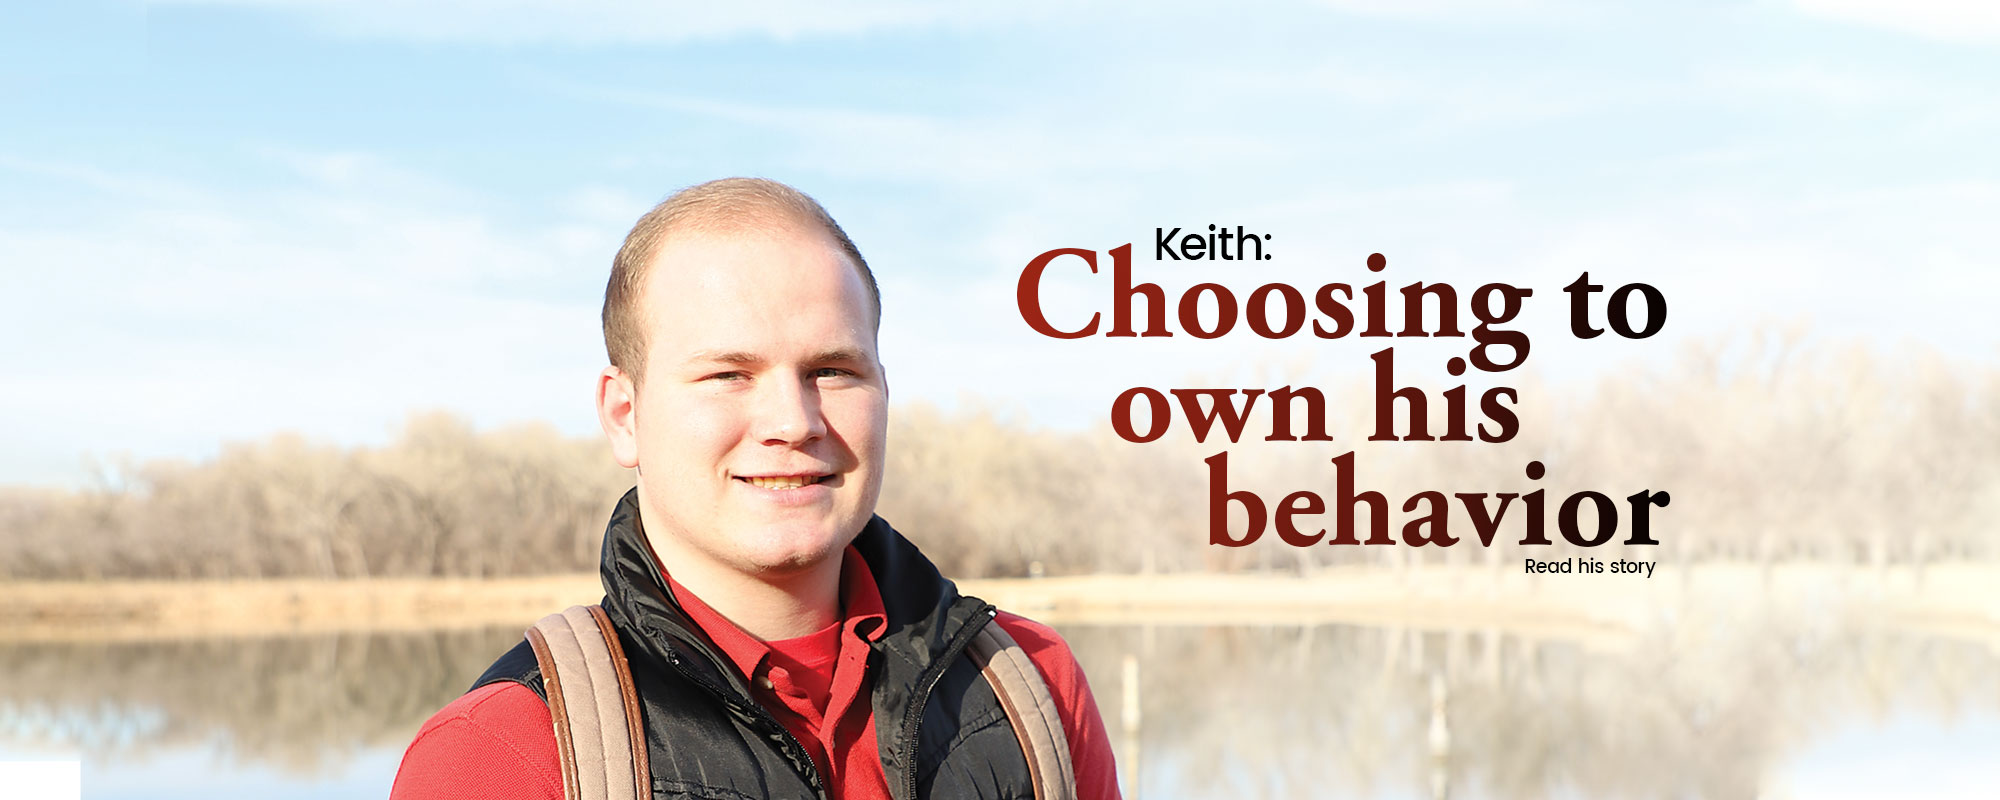 Click to read Keith's story.